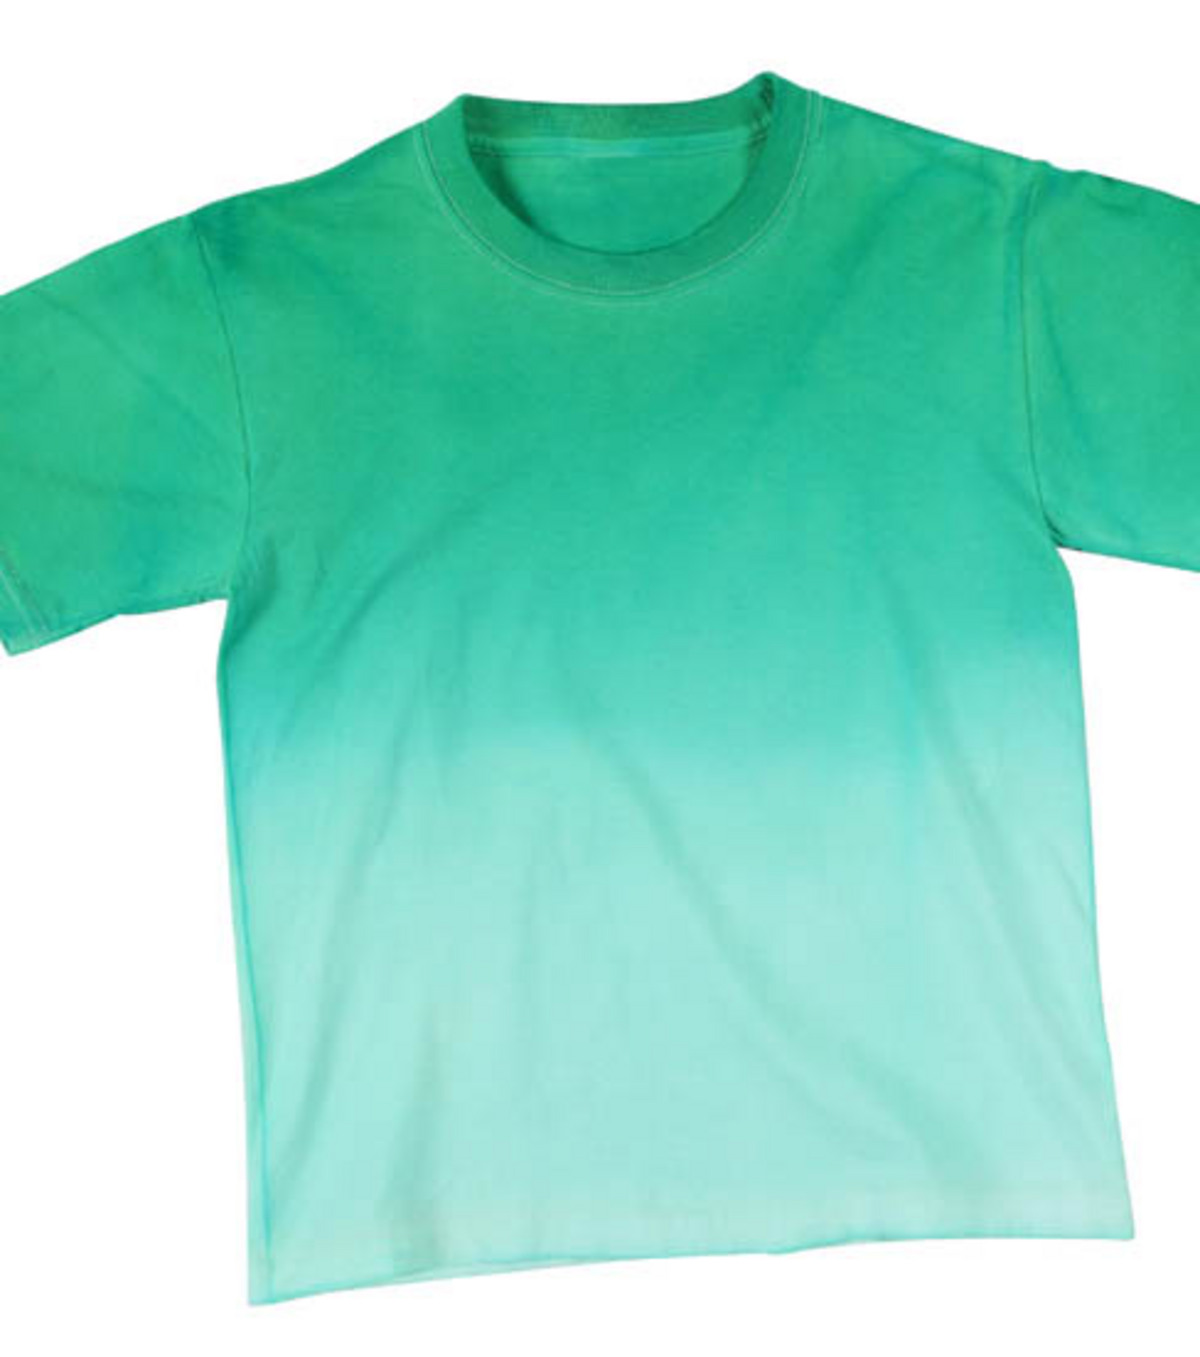 Go Green Ombre Dyed T-shirt